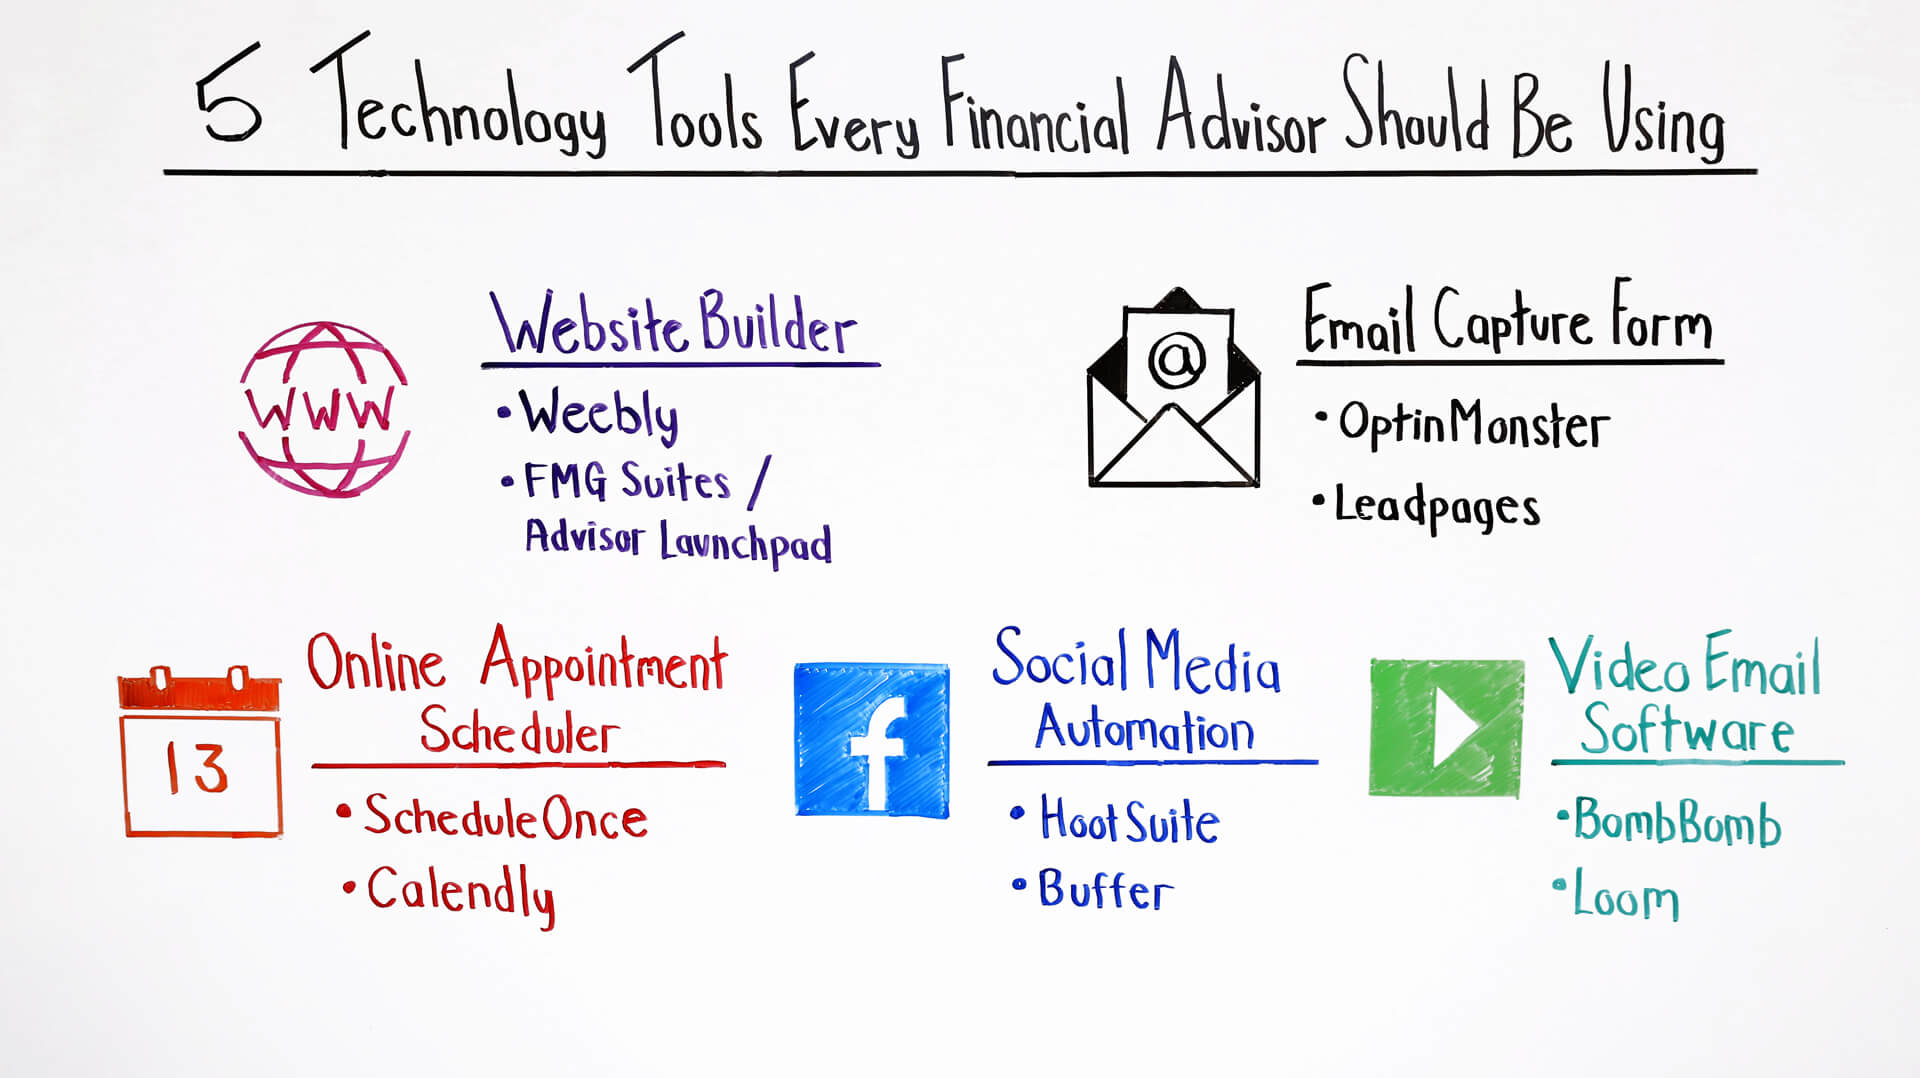 5 technology tools every financial advisor should be using